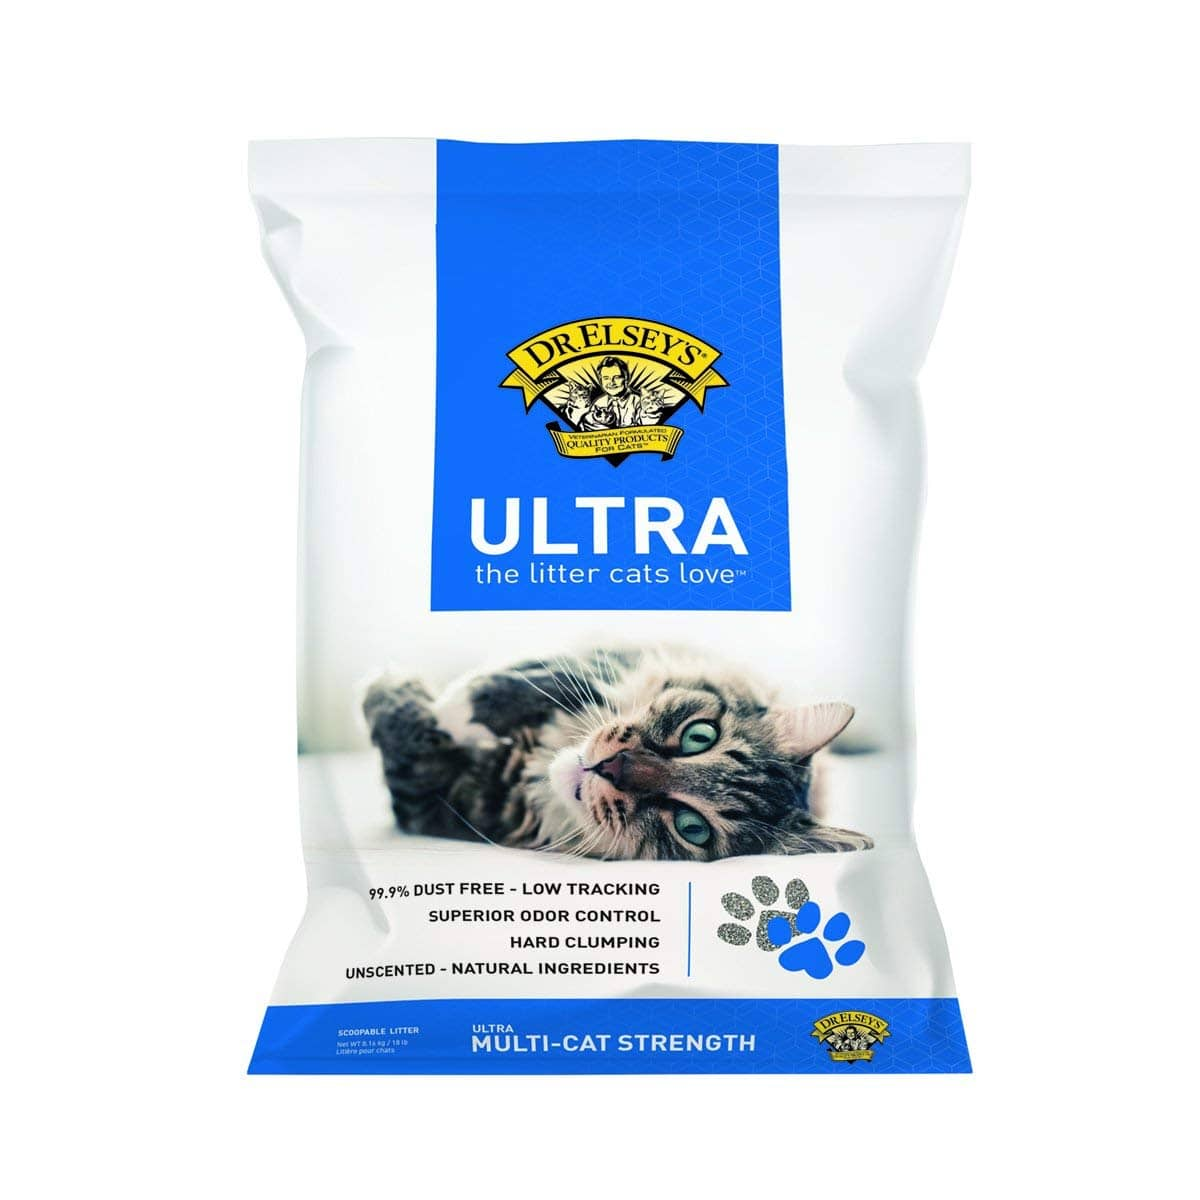 Dr. Elsey's Precious Cat Ultra Cat Litter, 18 pound bag $4.78